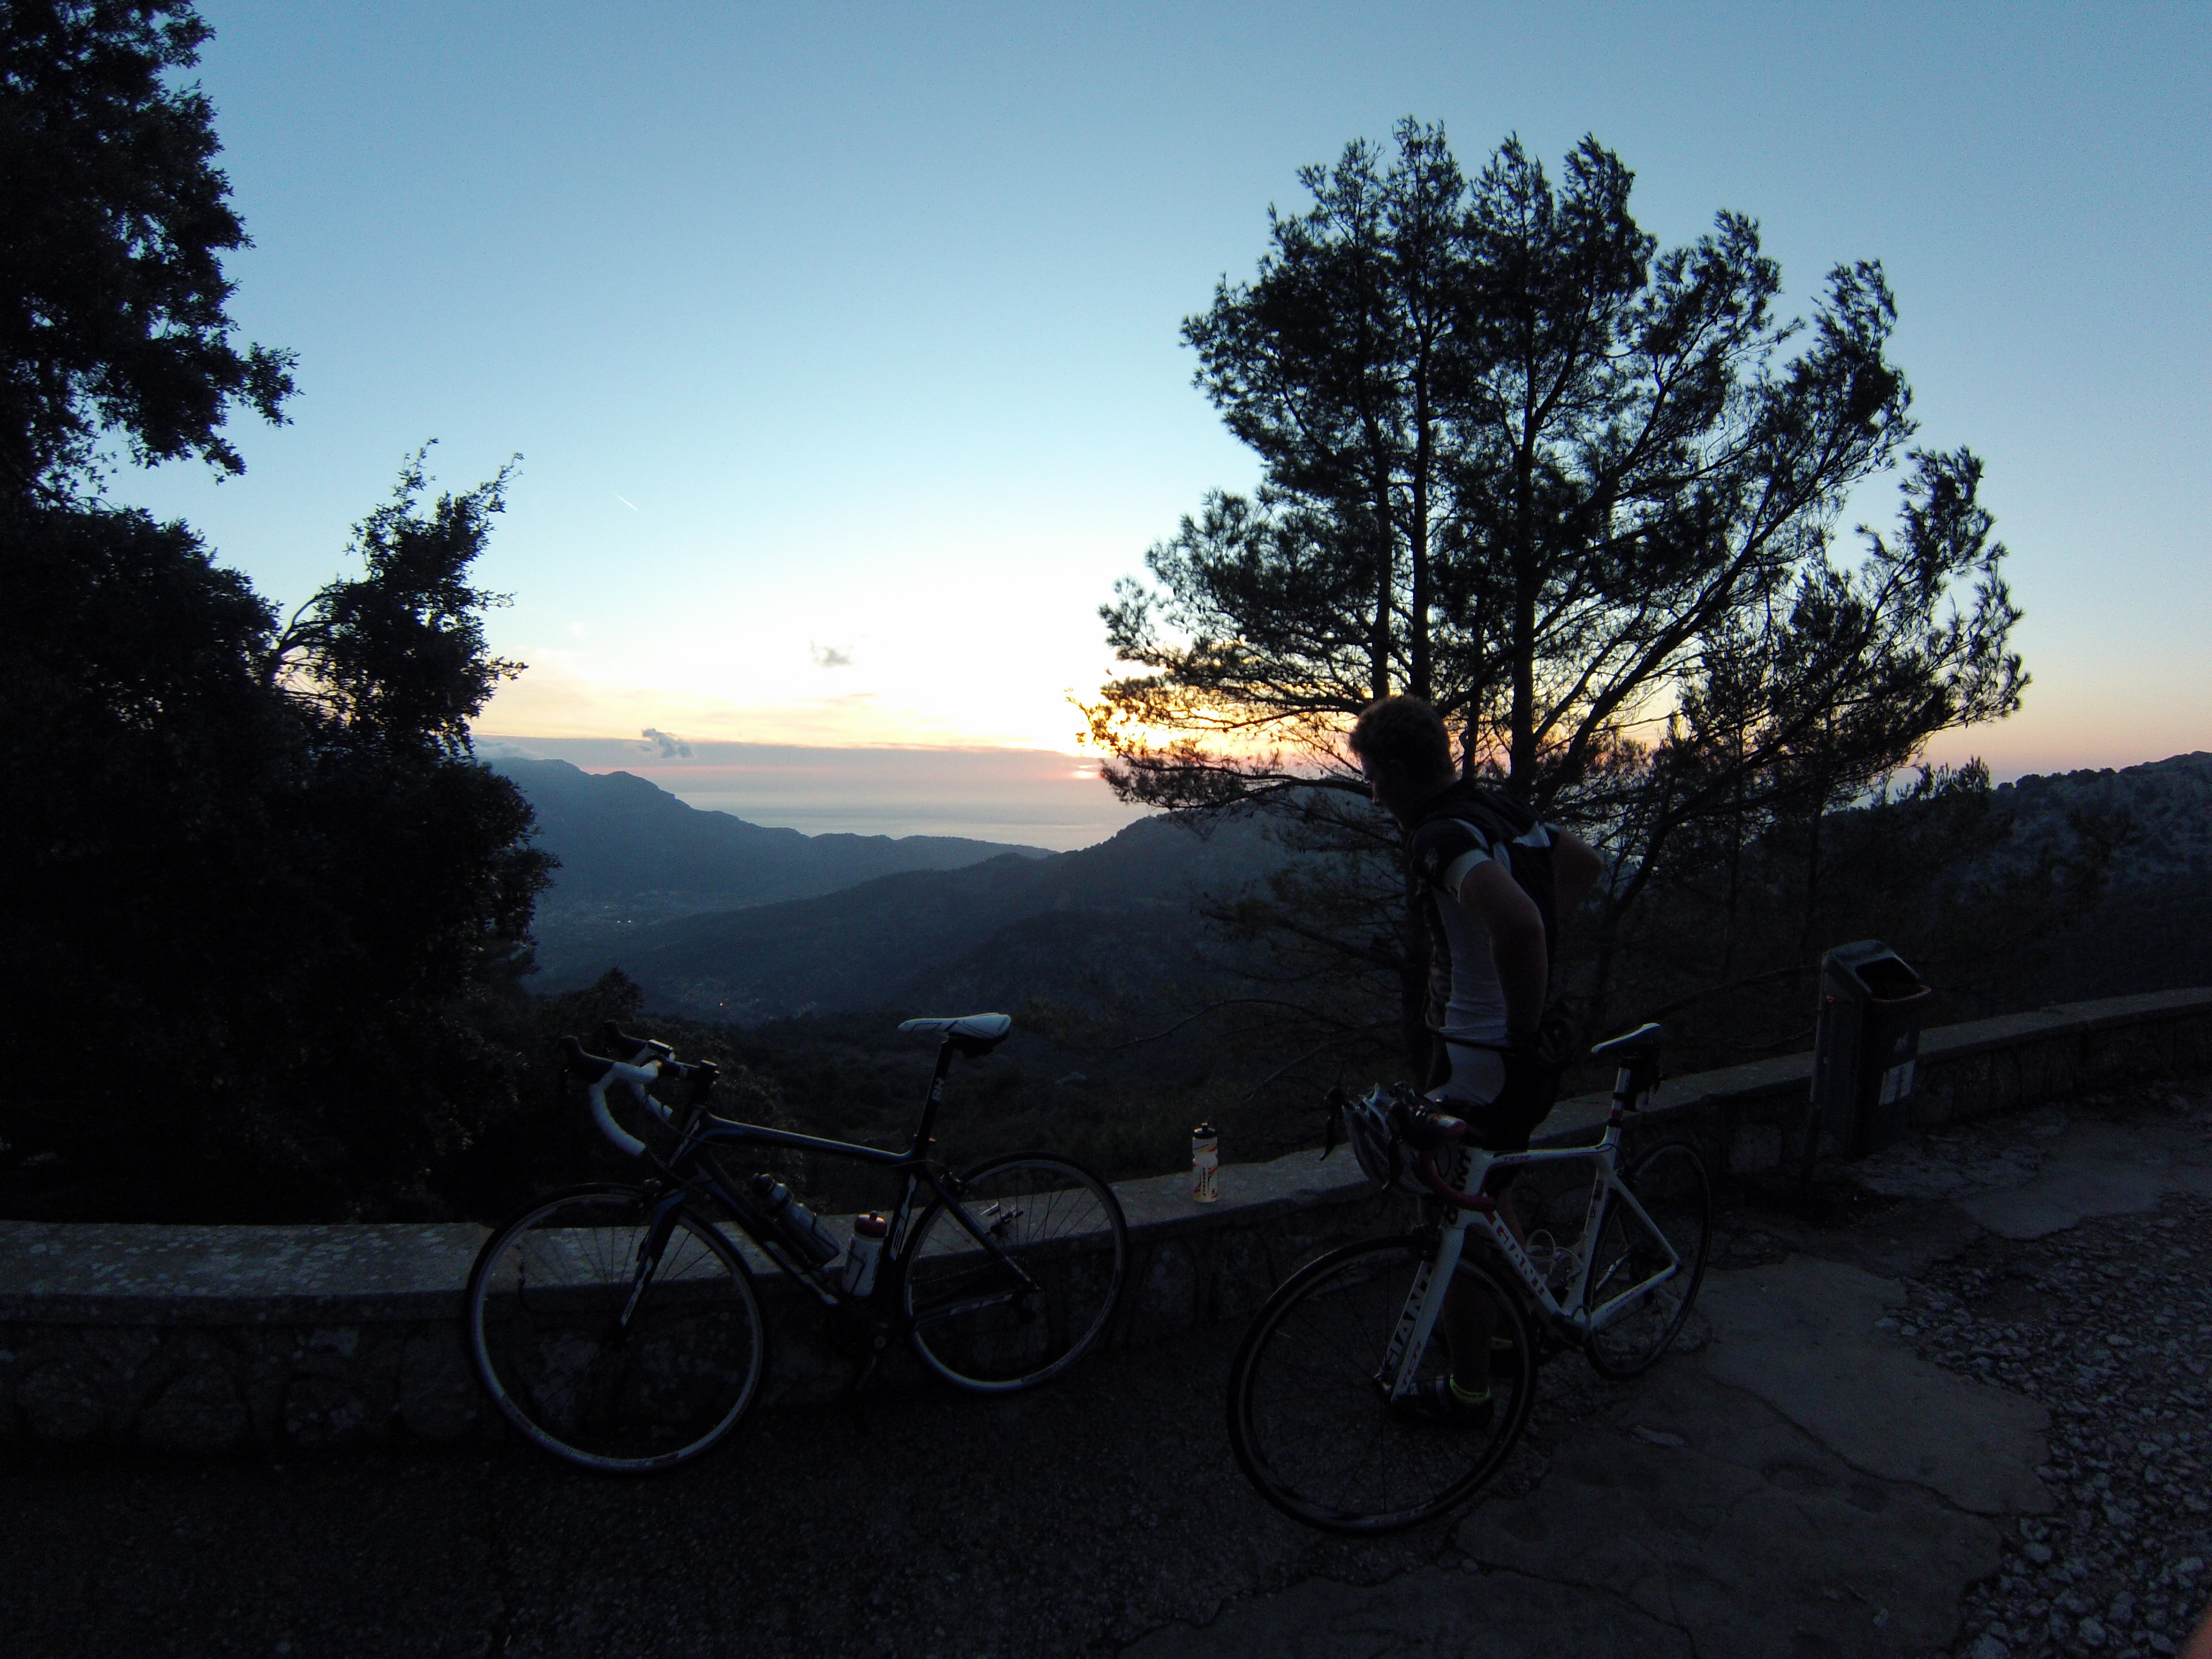 Last training ride before the event in Spain. 15 km of climbing. Got to the top just in time to see the sunset before riding back down in near darkness and sub zero temperatures.